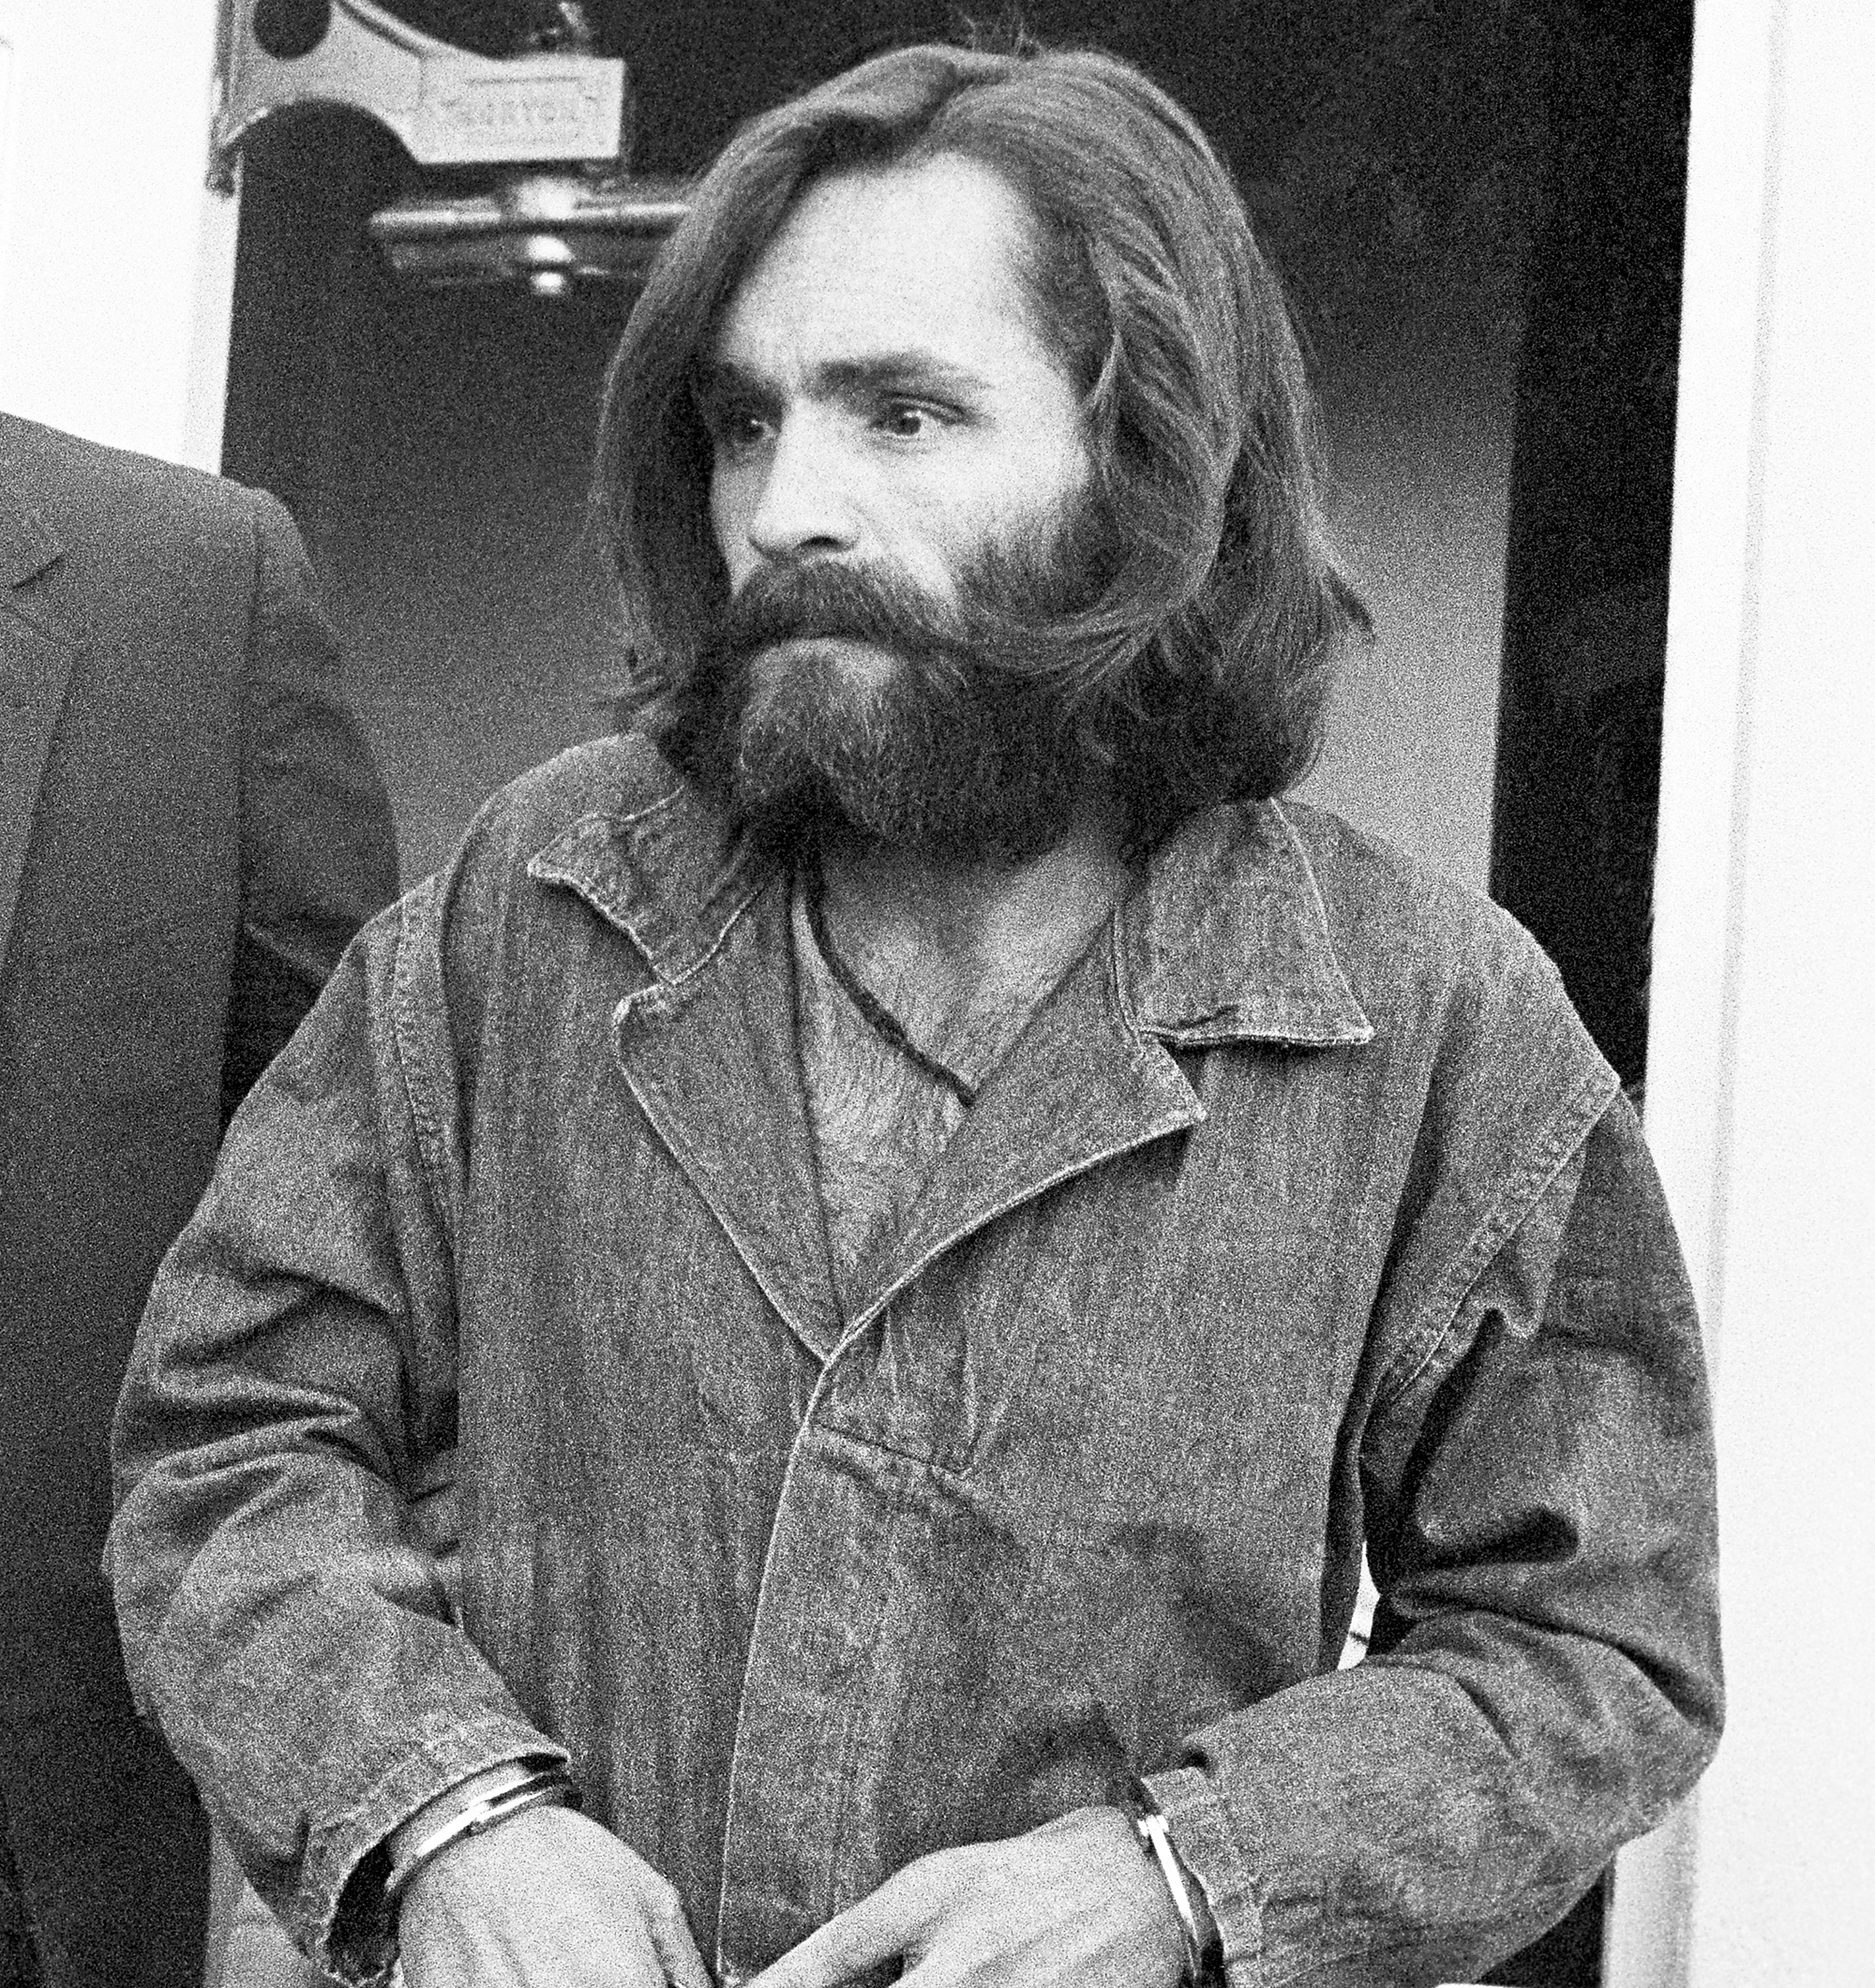 Charles Manson's Introduction to Sharon Tate Reenacted